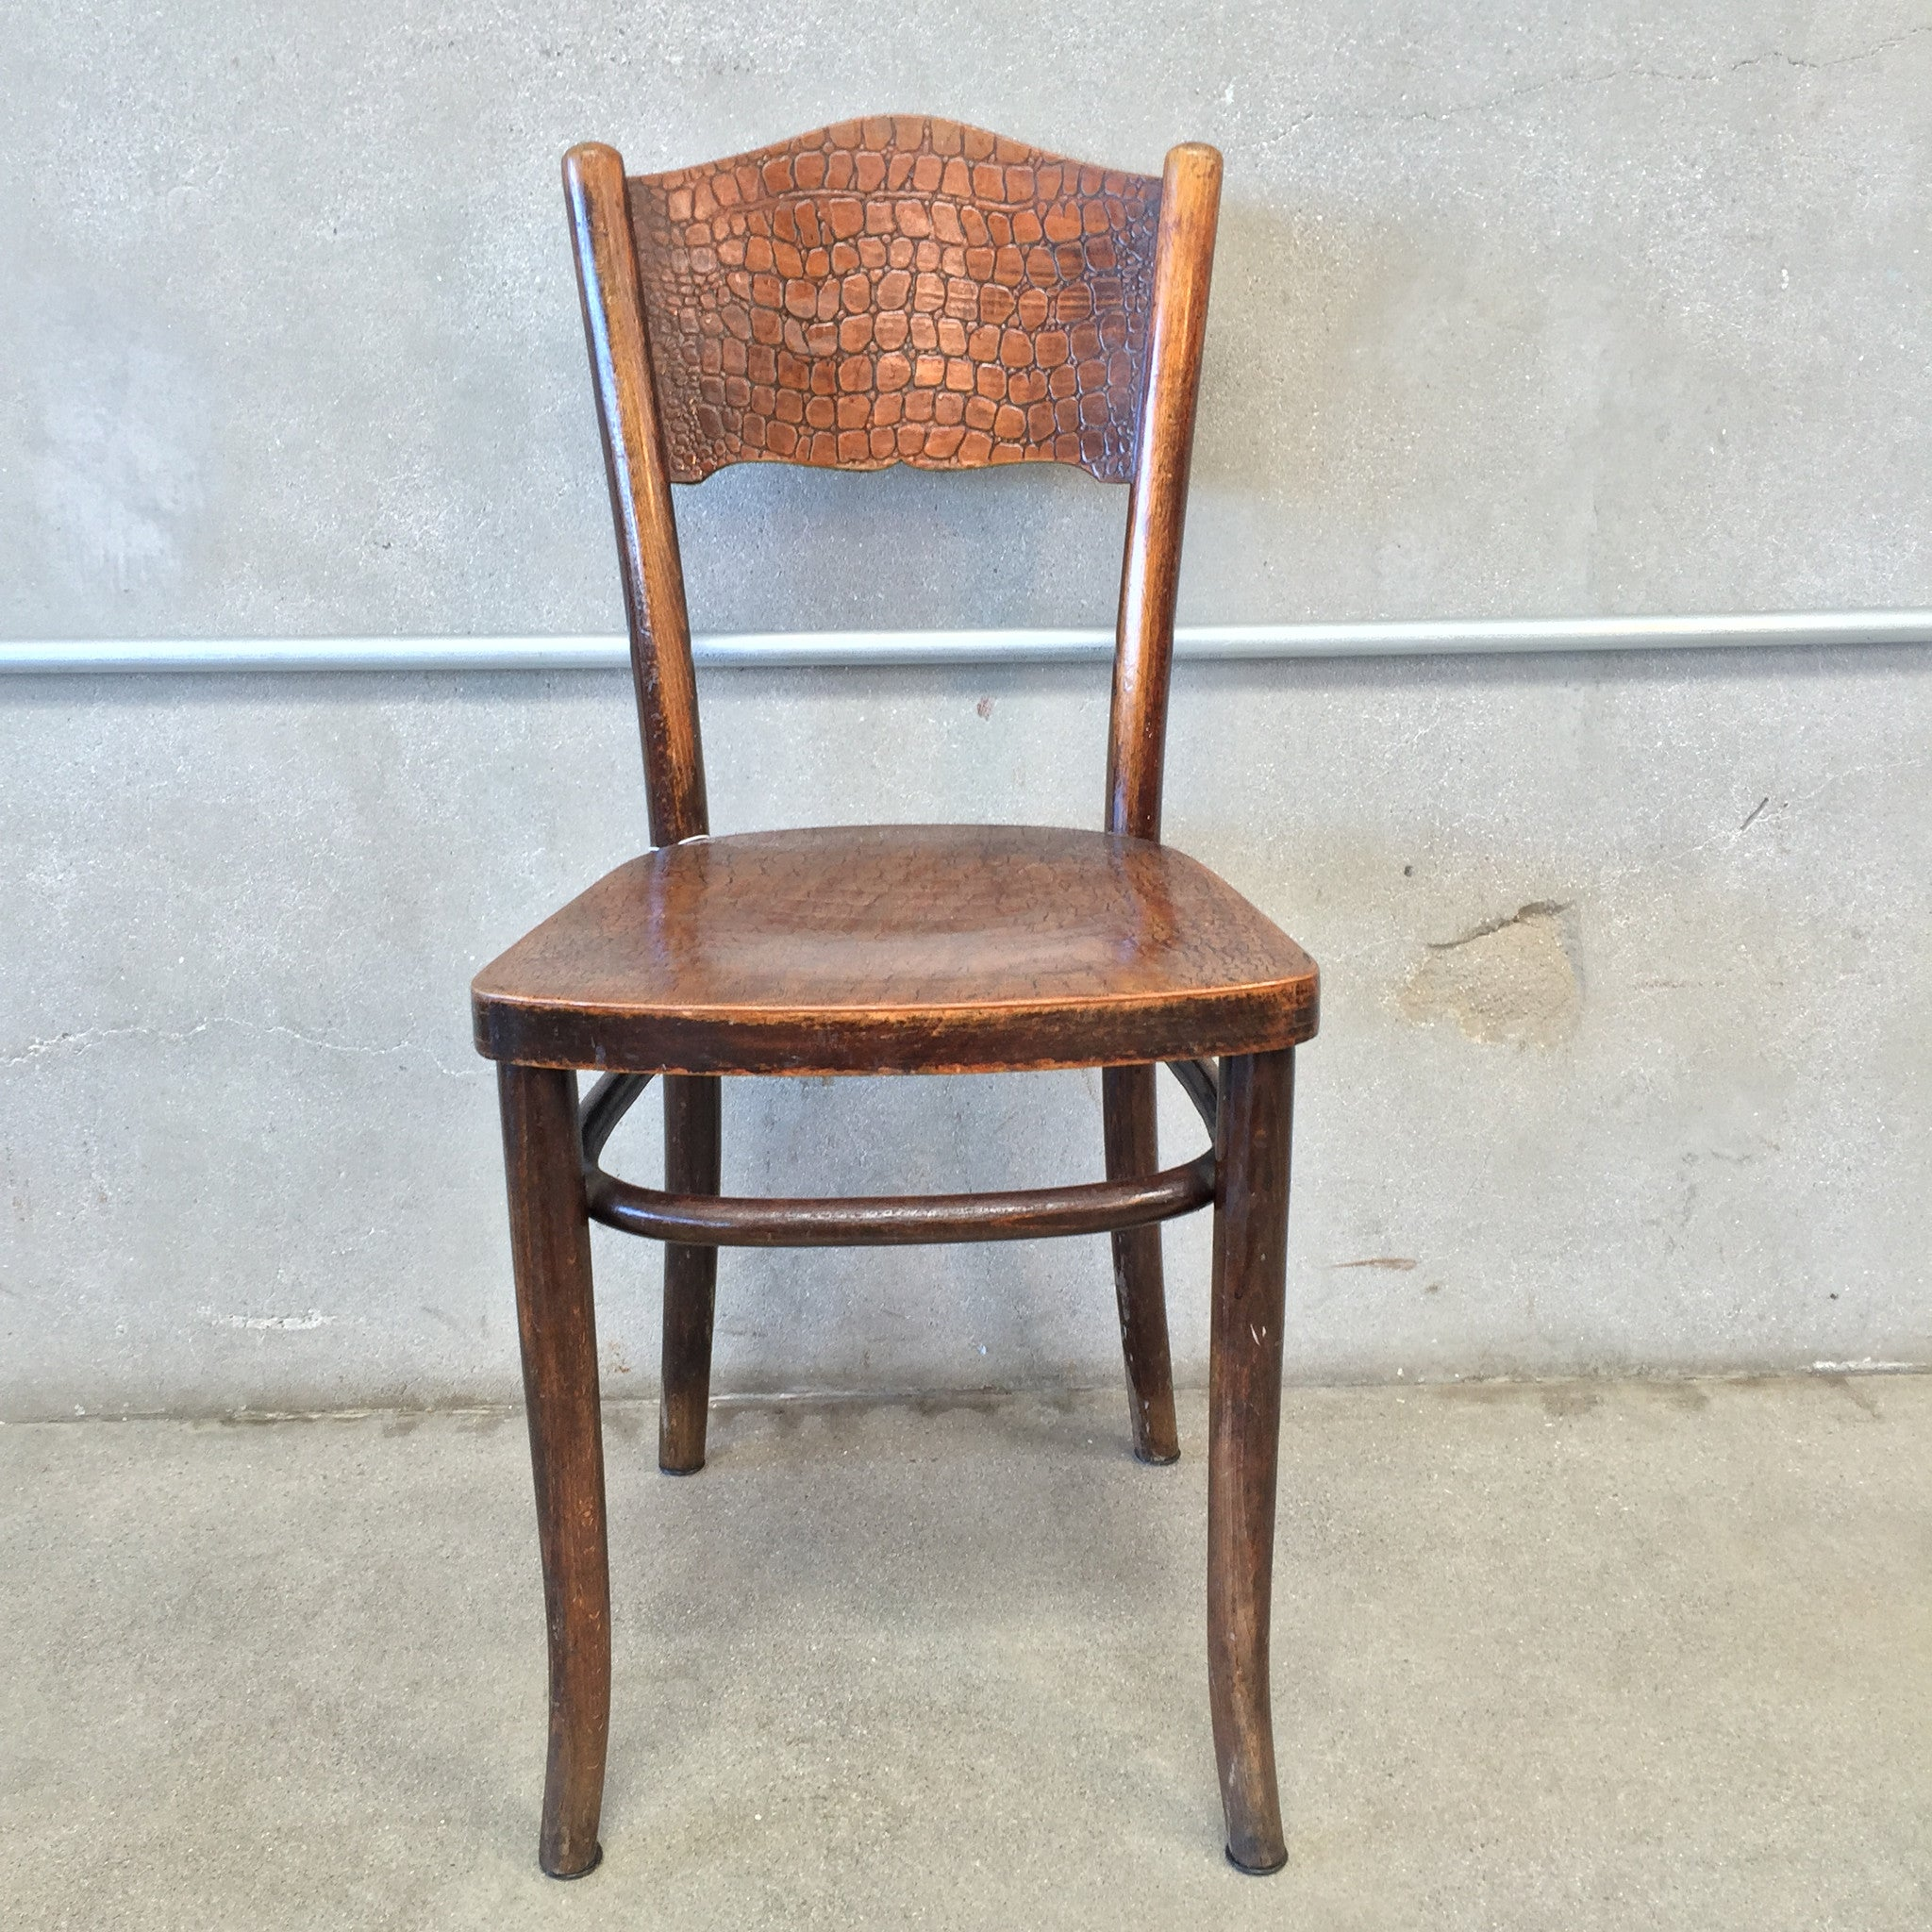 Antique Thonet Alligator Chair – UrbanAmericana